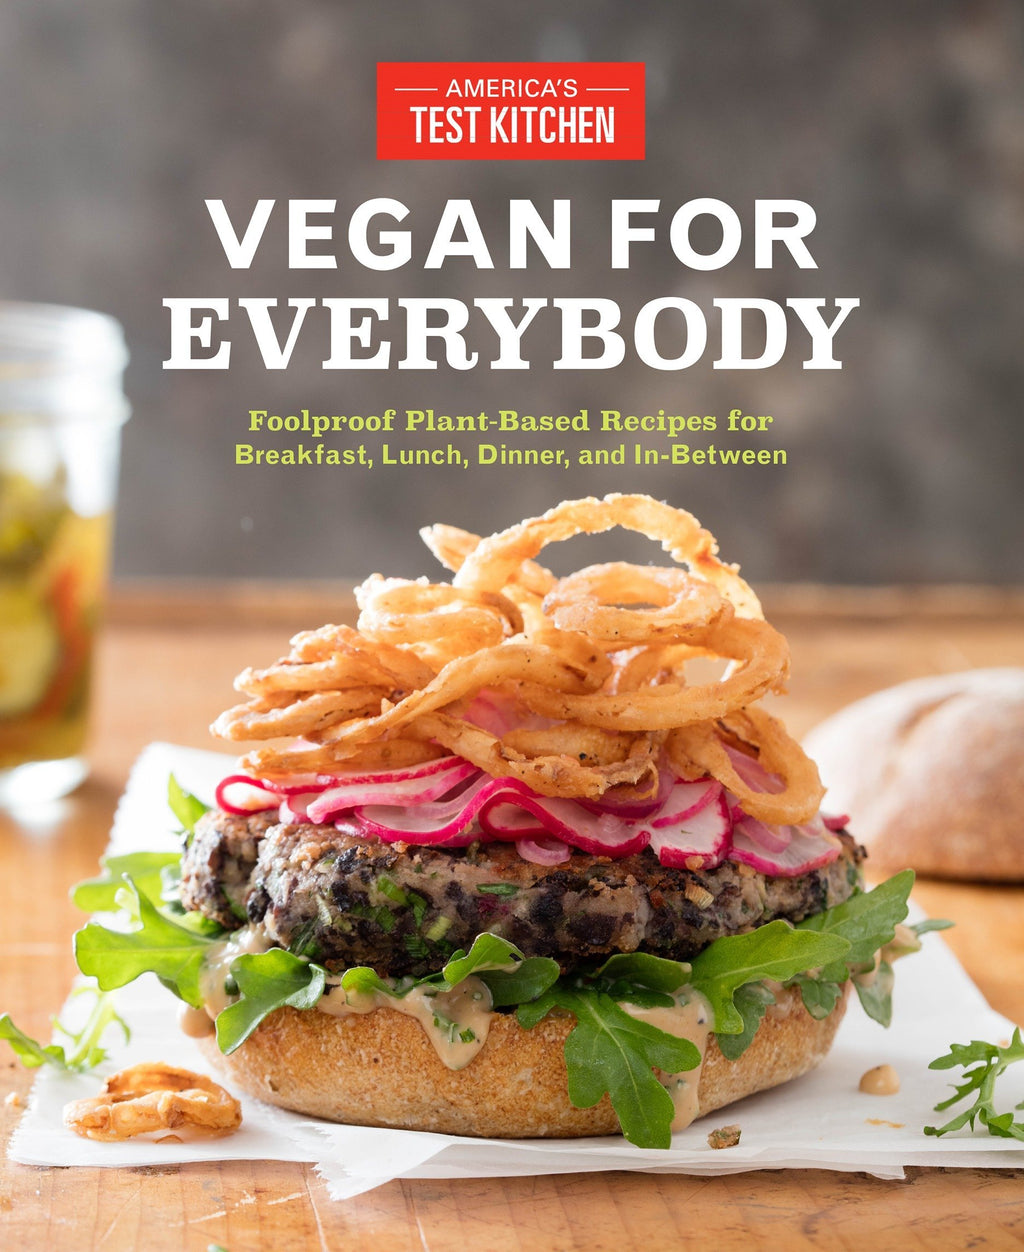 Vegan for Everybody by America's Test Kitchen